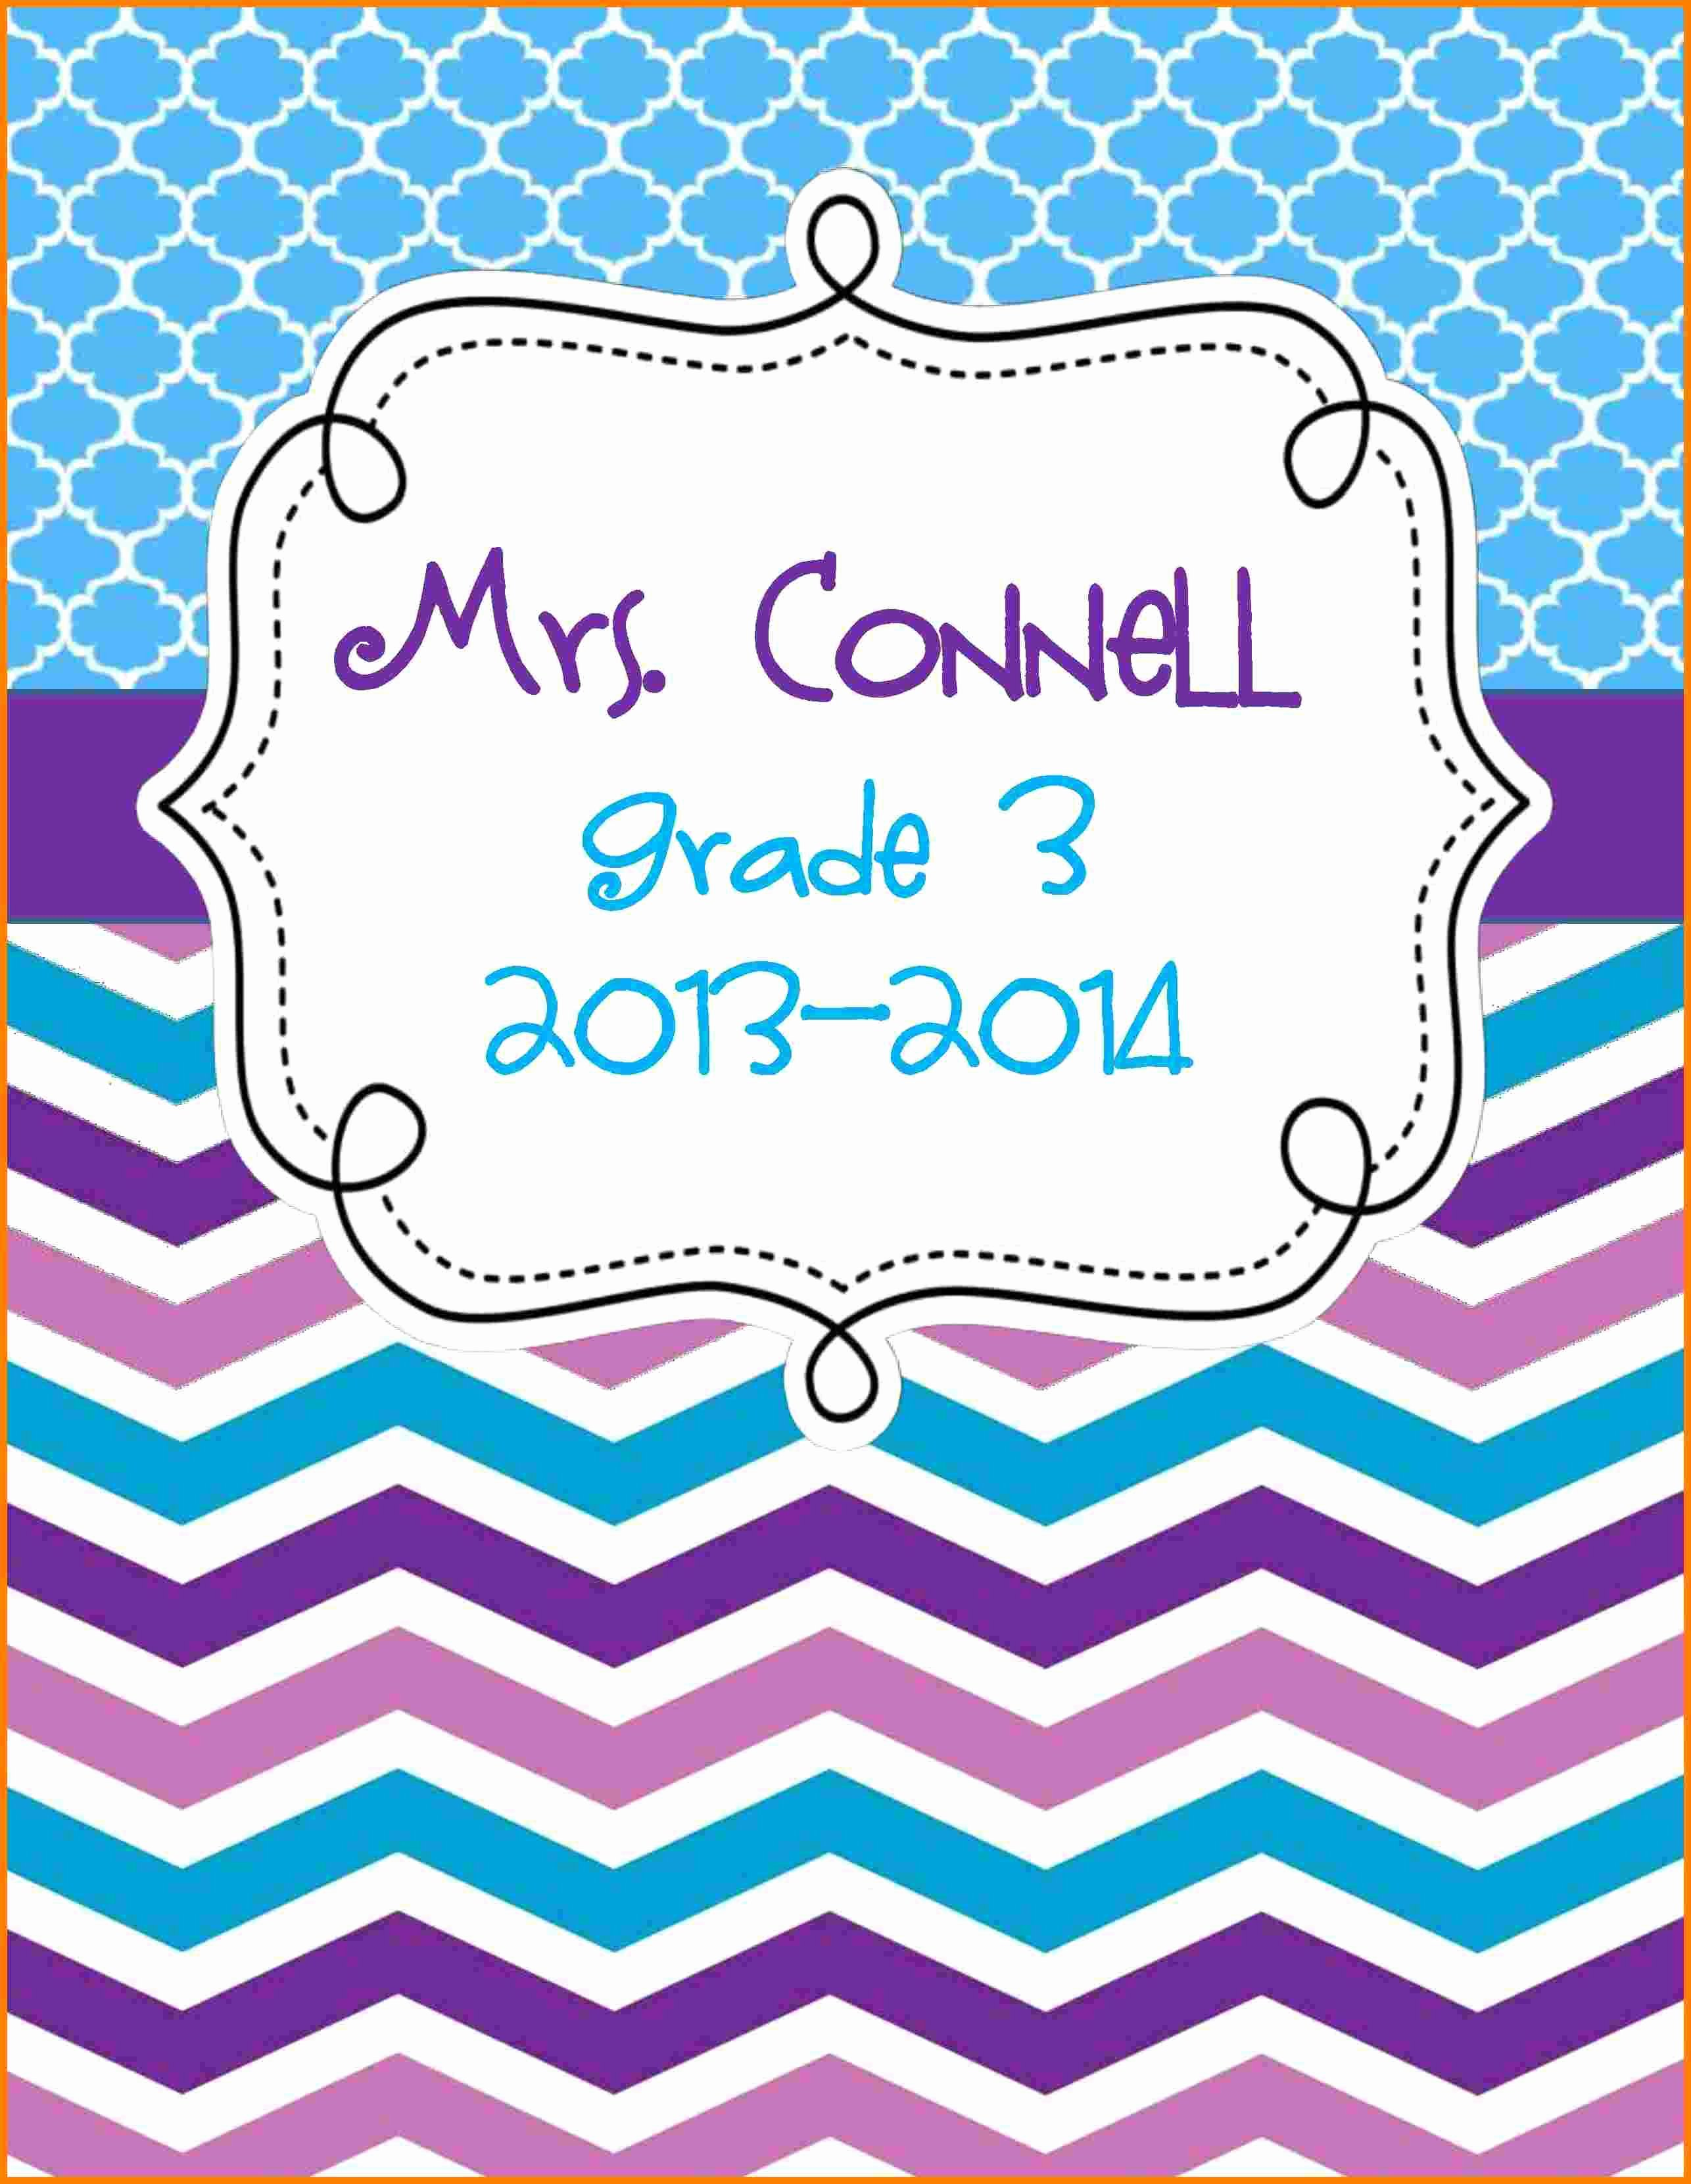 Binder Cover Templates Word Beautiful 6 Editable Binder Cover Templates